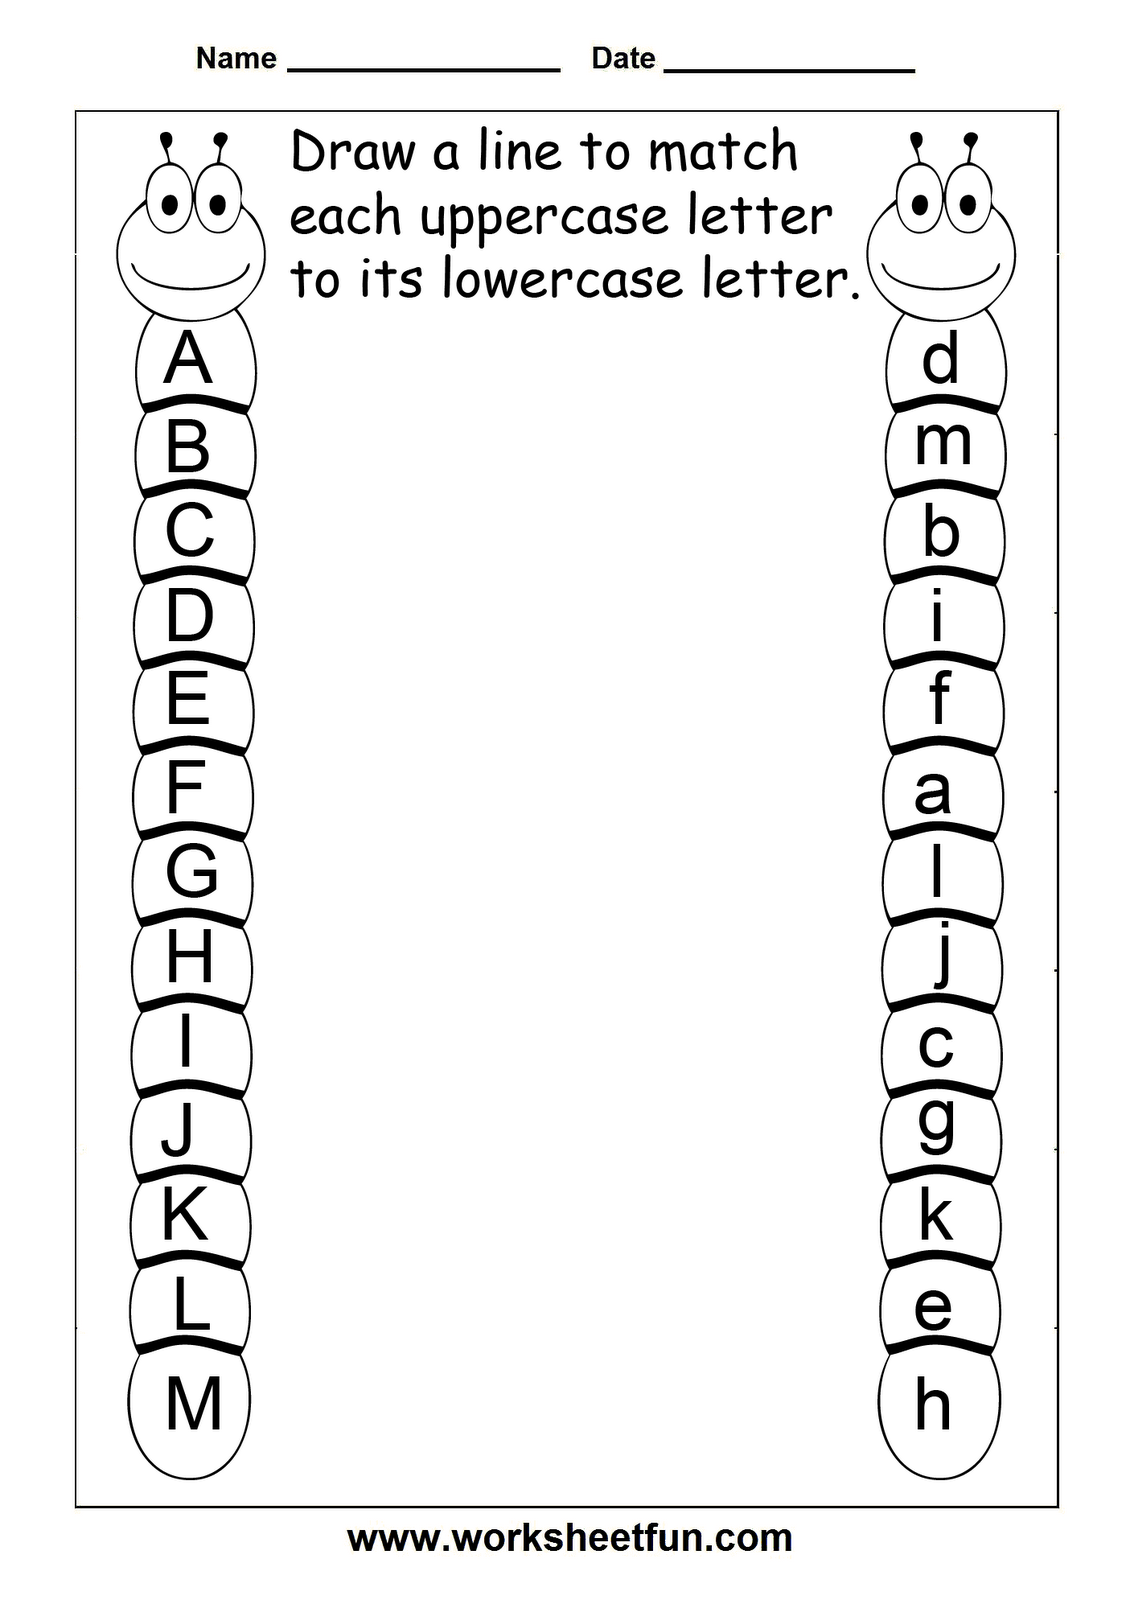 worksheet Pre K Worksheets Printable free worksheets printable abitlikethis pre k worksheets